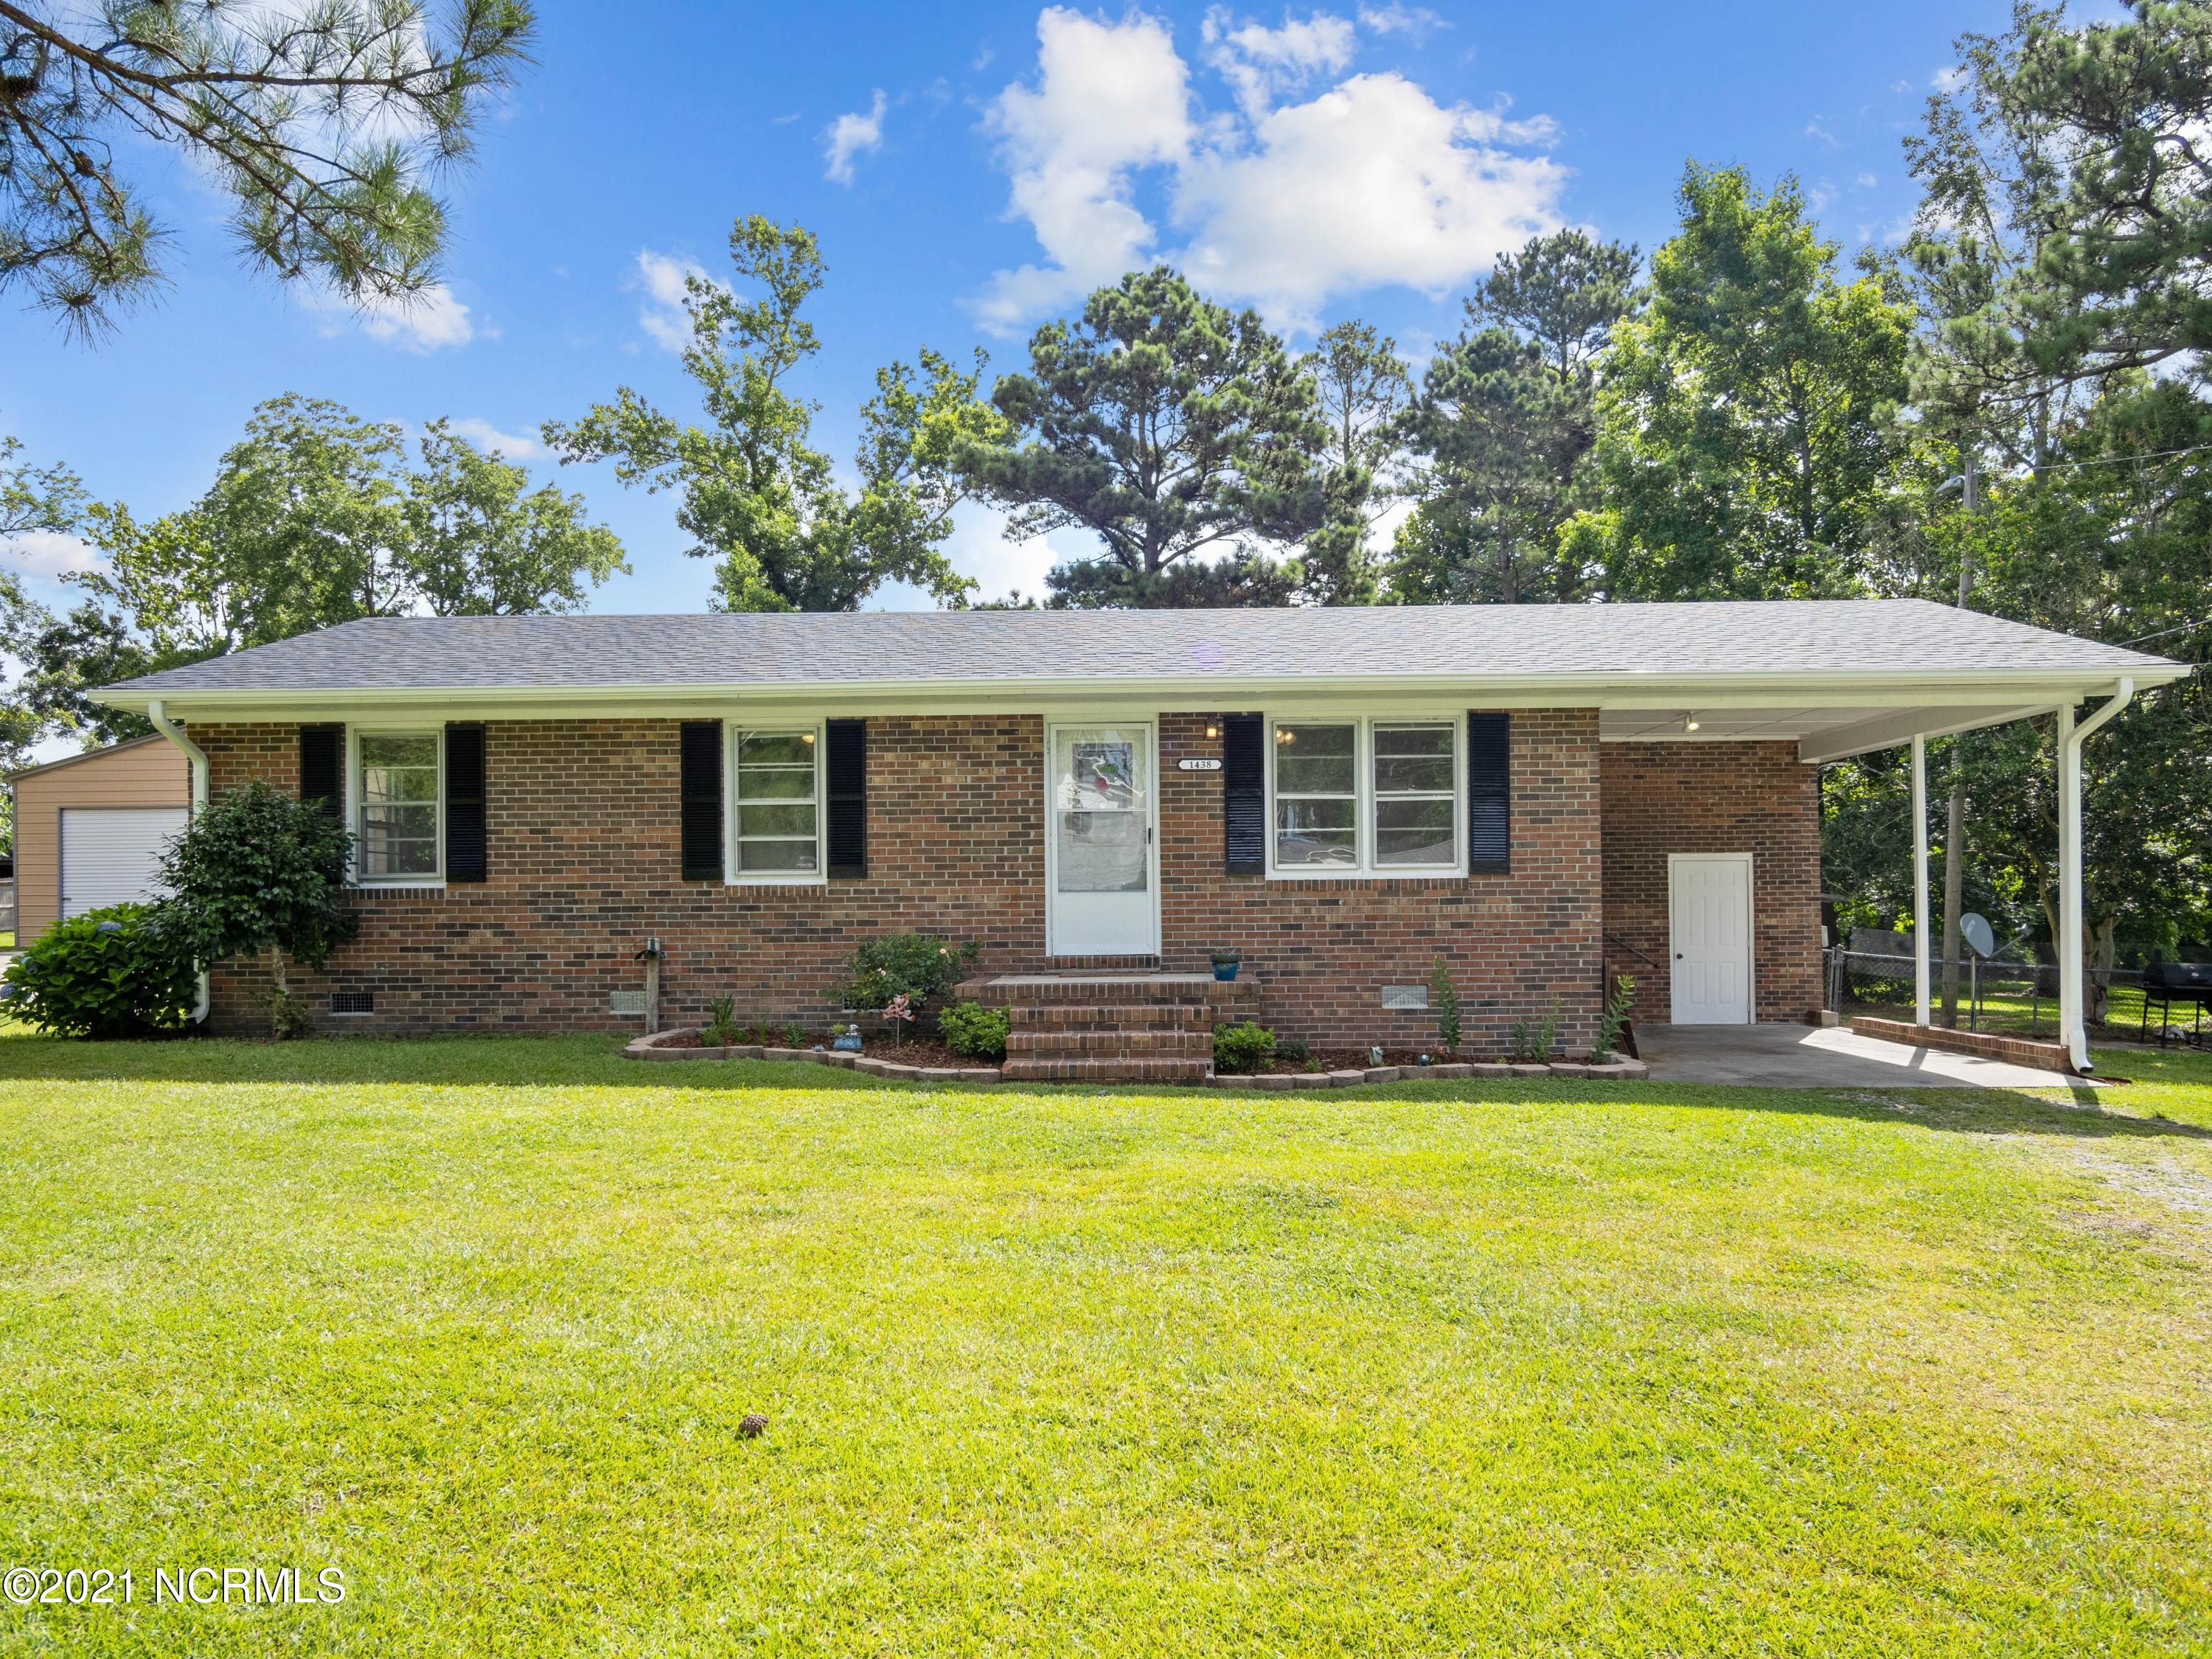 Welcome Home! This adorable brick ranch is ready for a new owner! The location is perfect for anyone who has to commute to Wilmington or around Camp Lejeune/ New River with access to HWY 17 less than 2 miles away. 3 bedroom/ 1 bathroom floorplan with original hardwood floors that have been recently refinished. Roof replaced in 2018. No HOA or city taxes. Huge fenced in private yard where you can enjoy a fire on a cool summer night with friends. This home is priced to sell so don't wait!